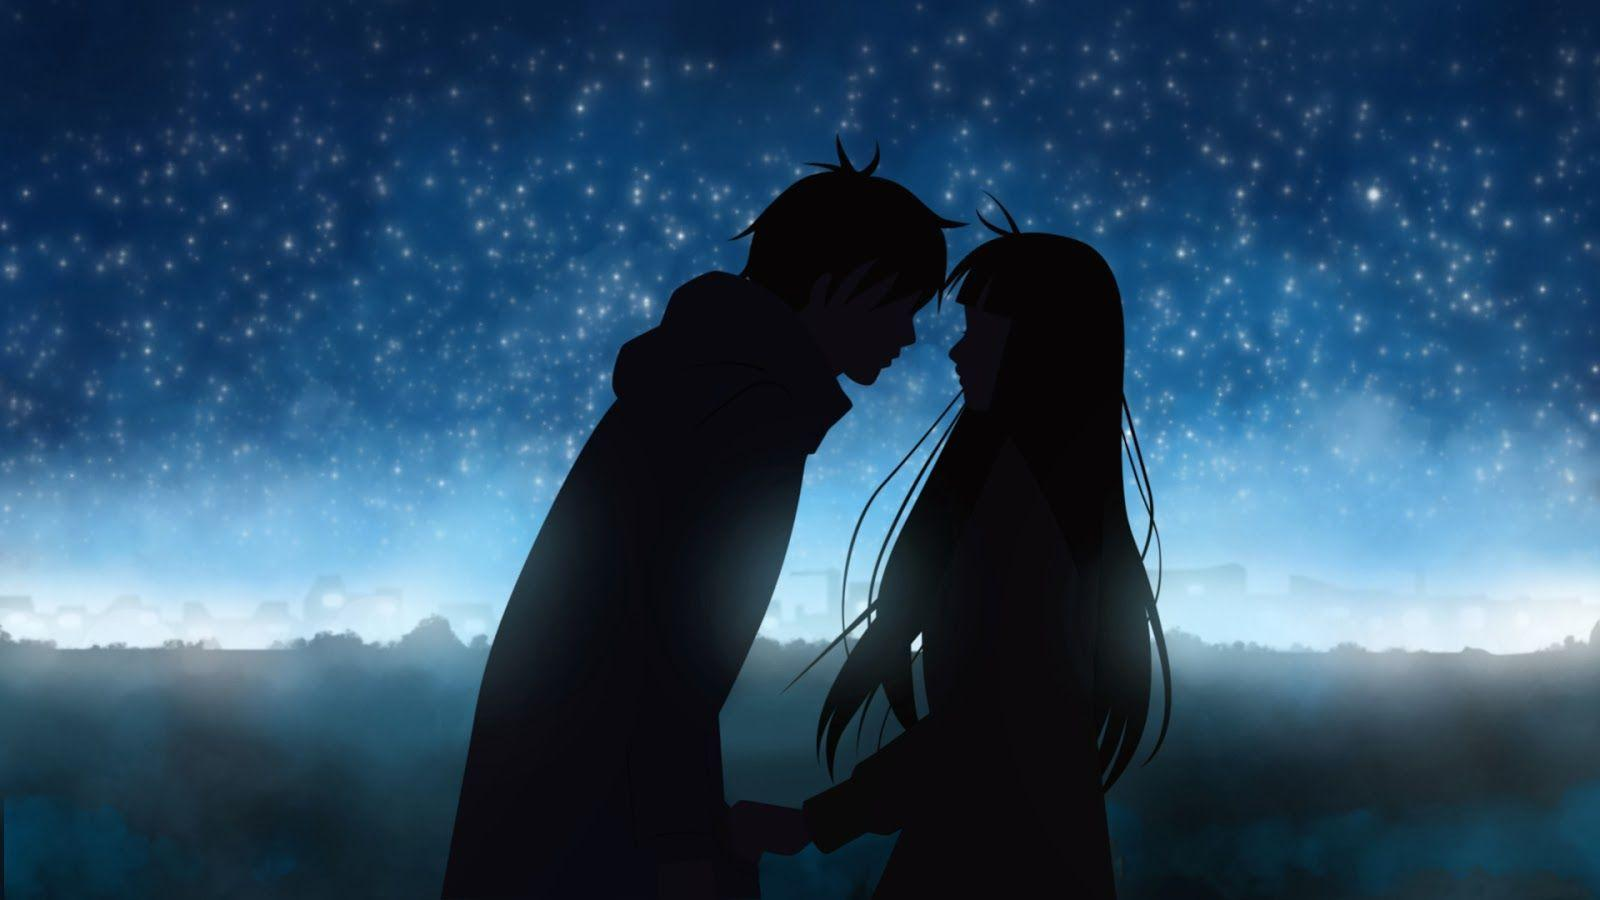 Love Kiss Wallpapers For Desktop : Anime Love Wallpapers - Wallpaper cave